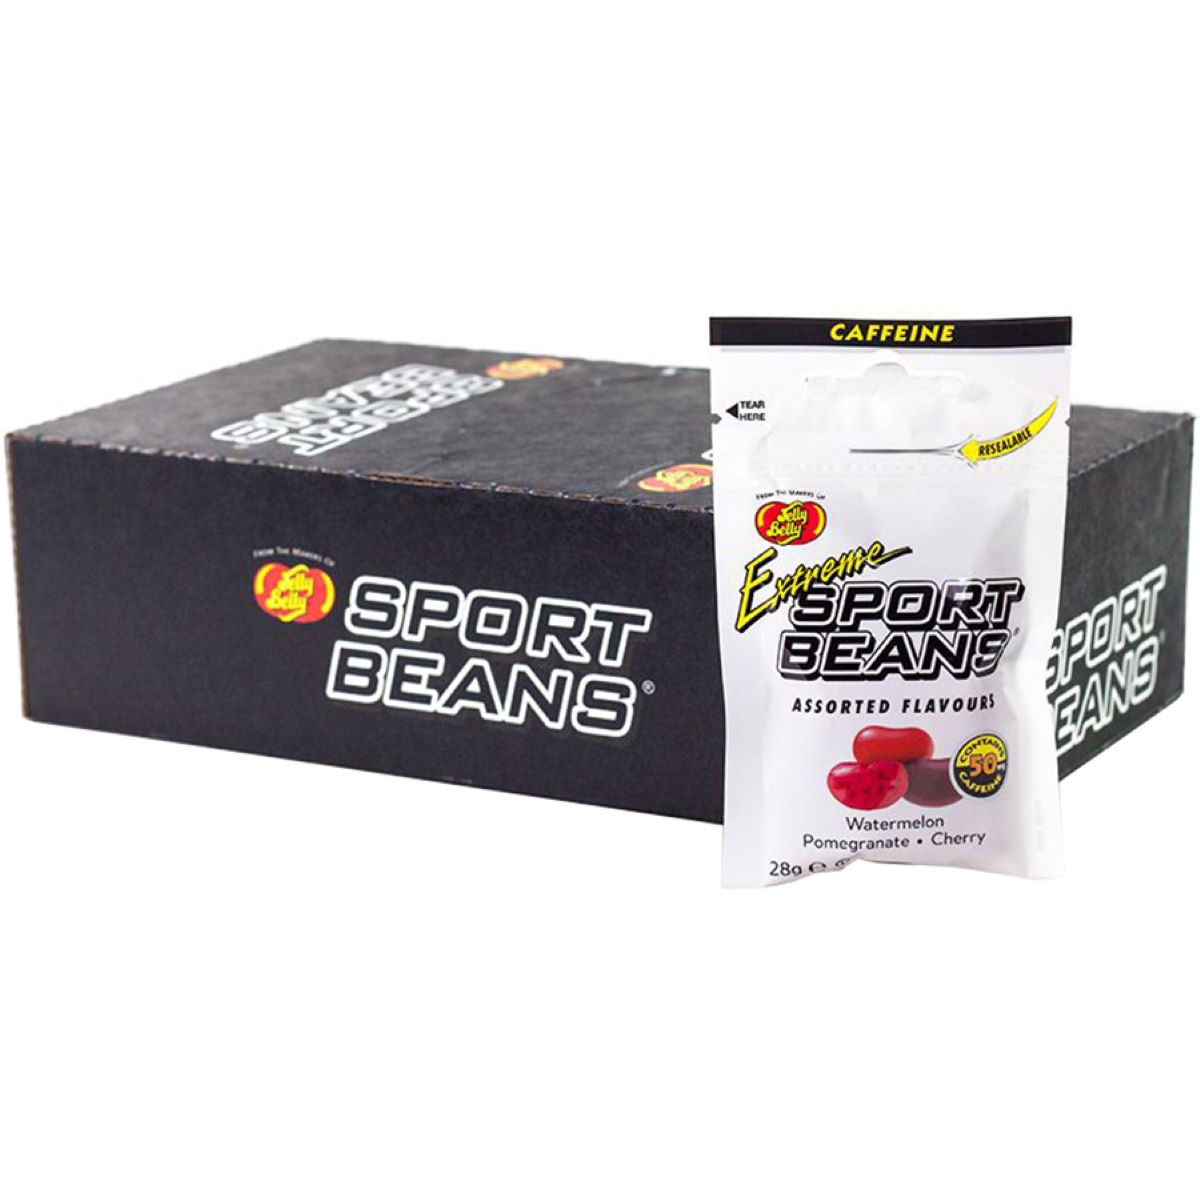 Jelly Belly Jelly Belly Extreme Sport Beans (24 x 28g)   Chews